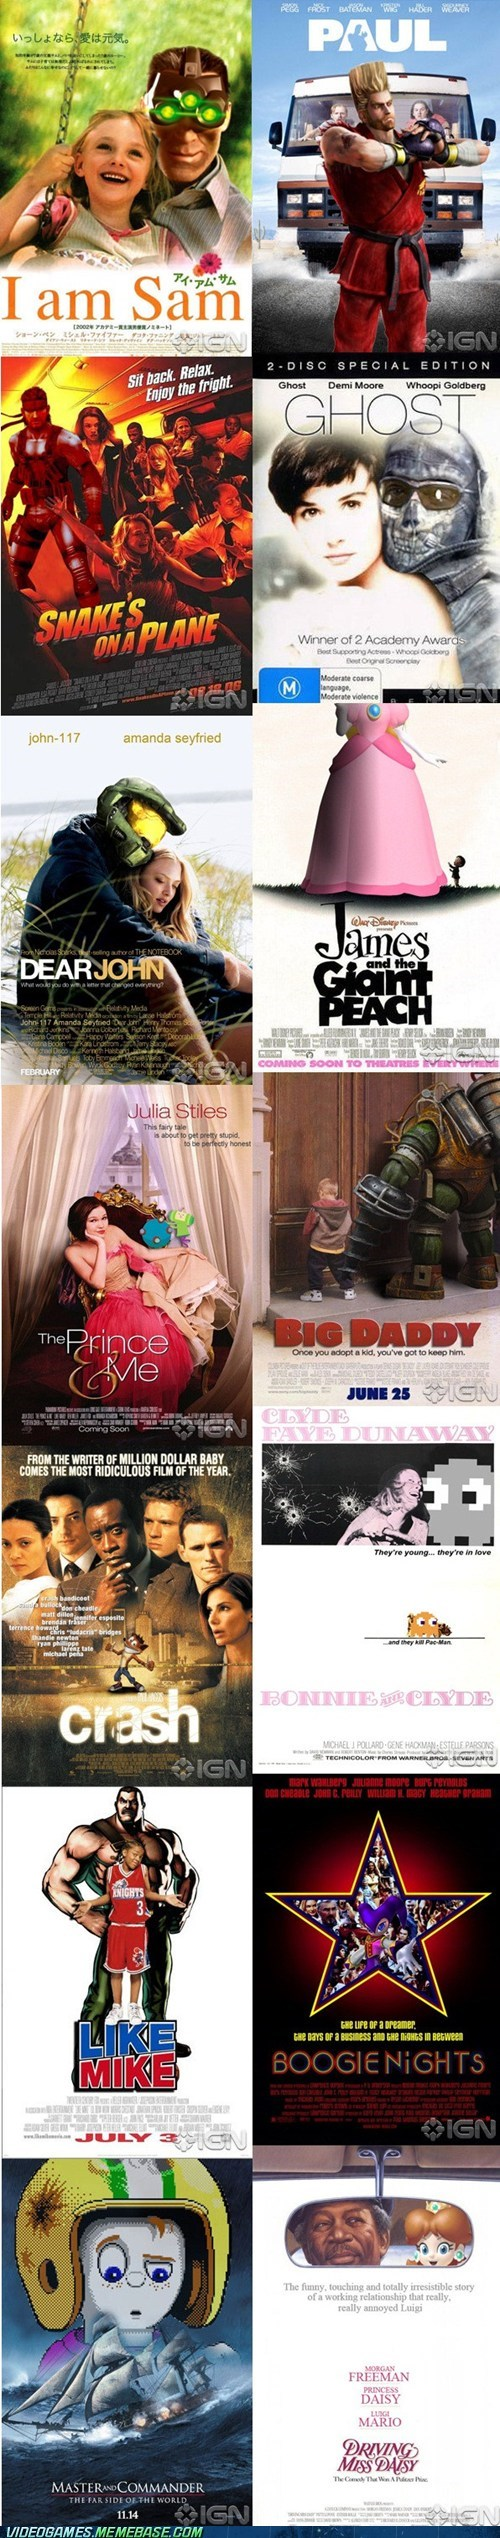 best of week movies posters the internets video games - 6453613056